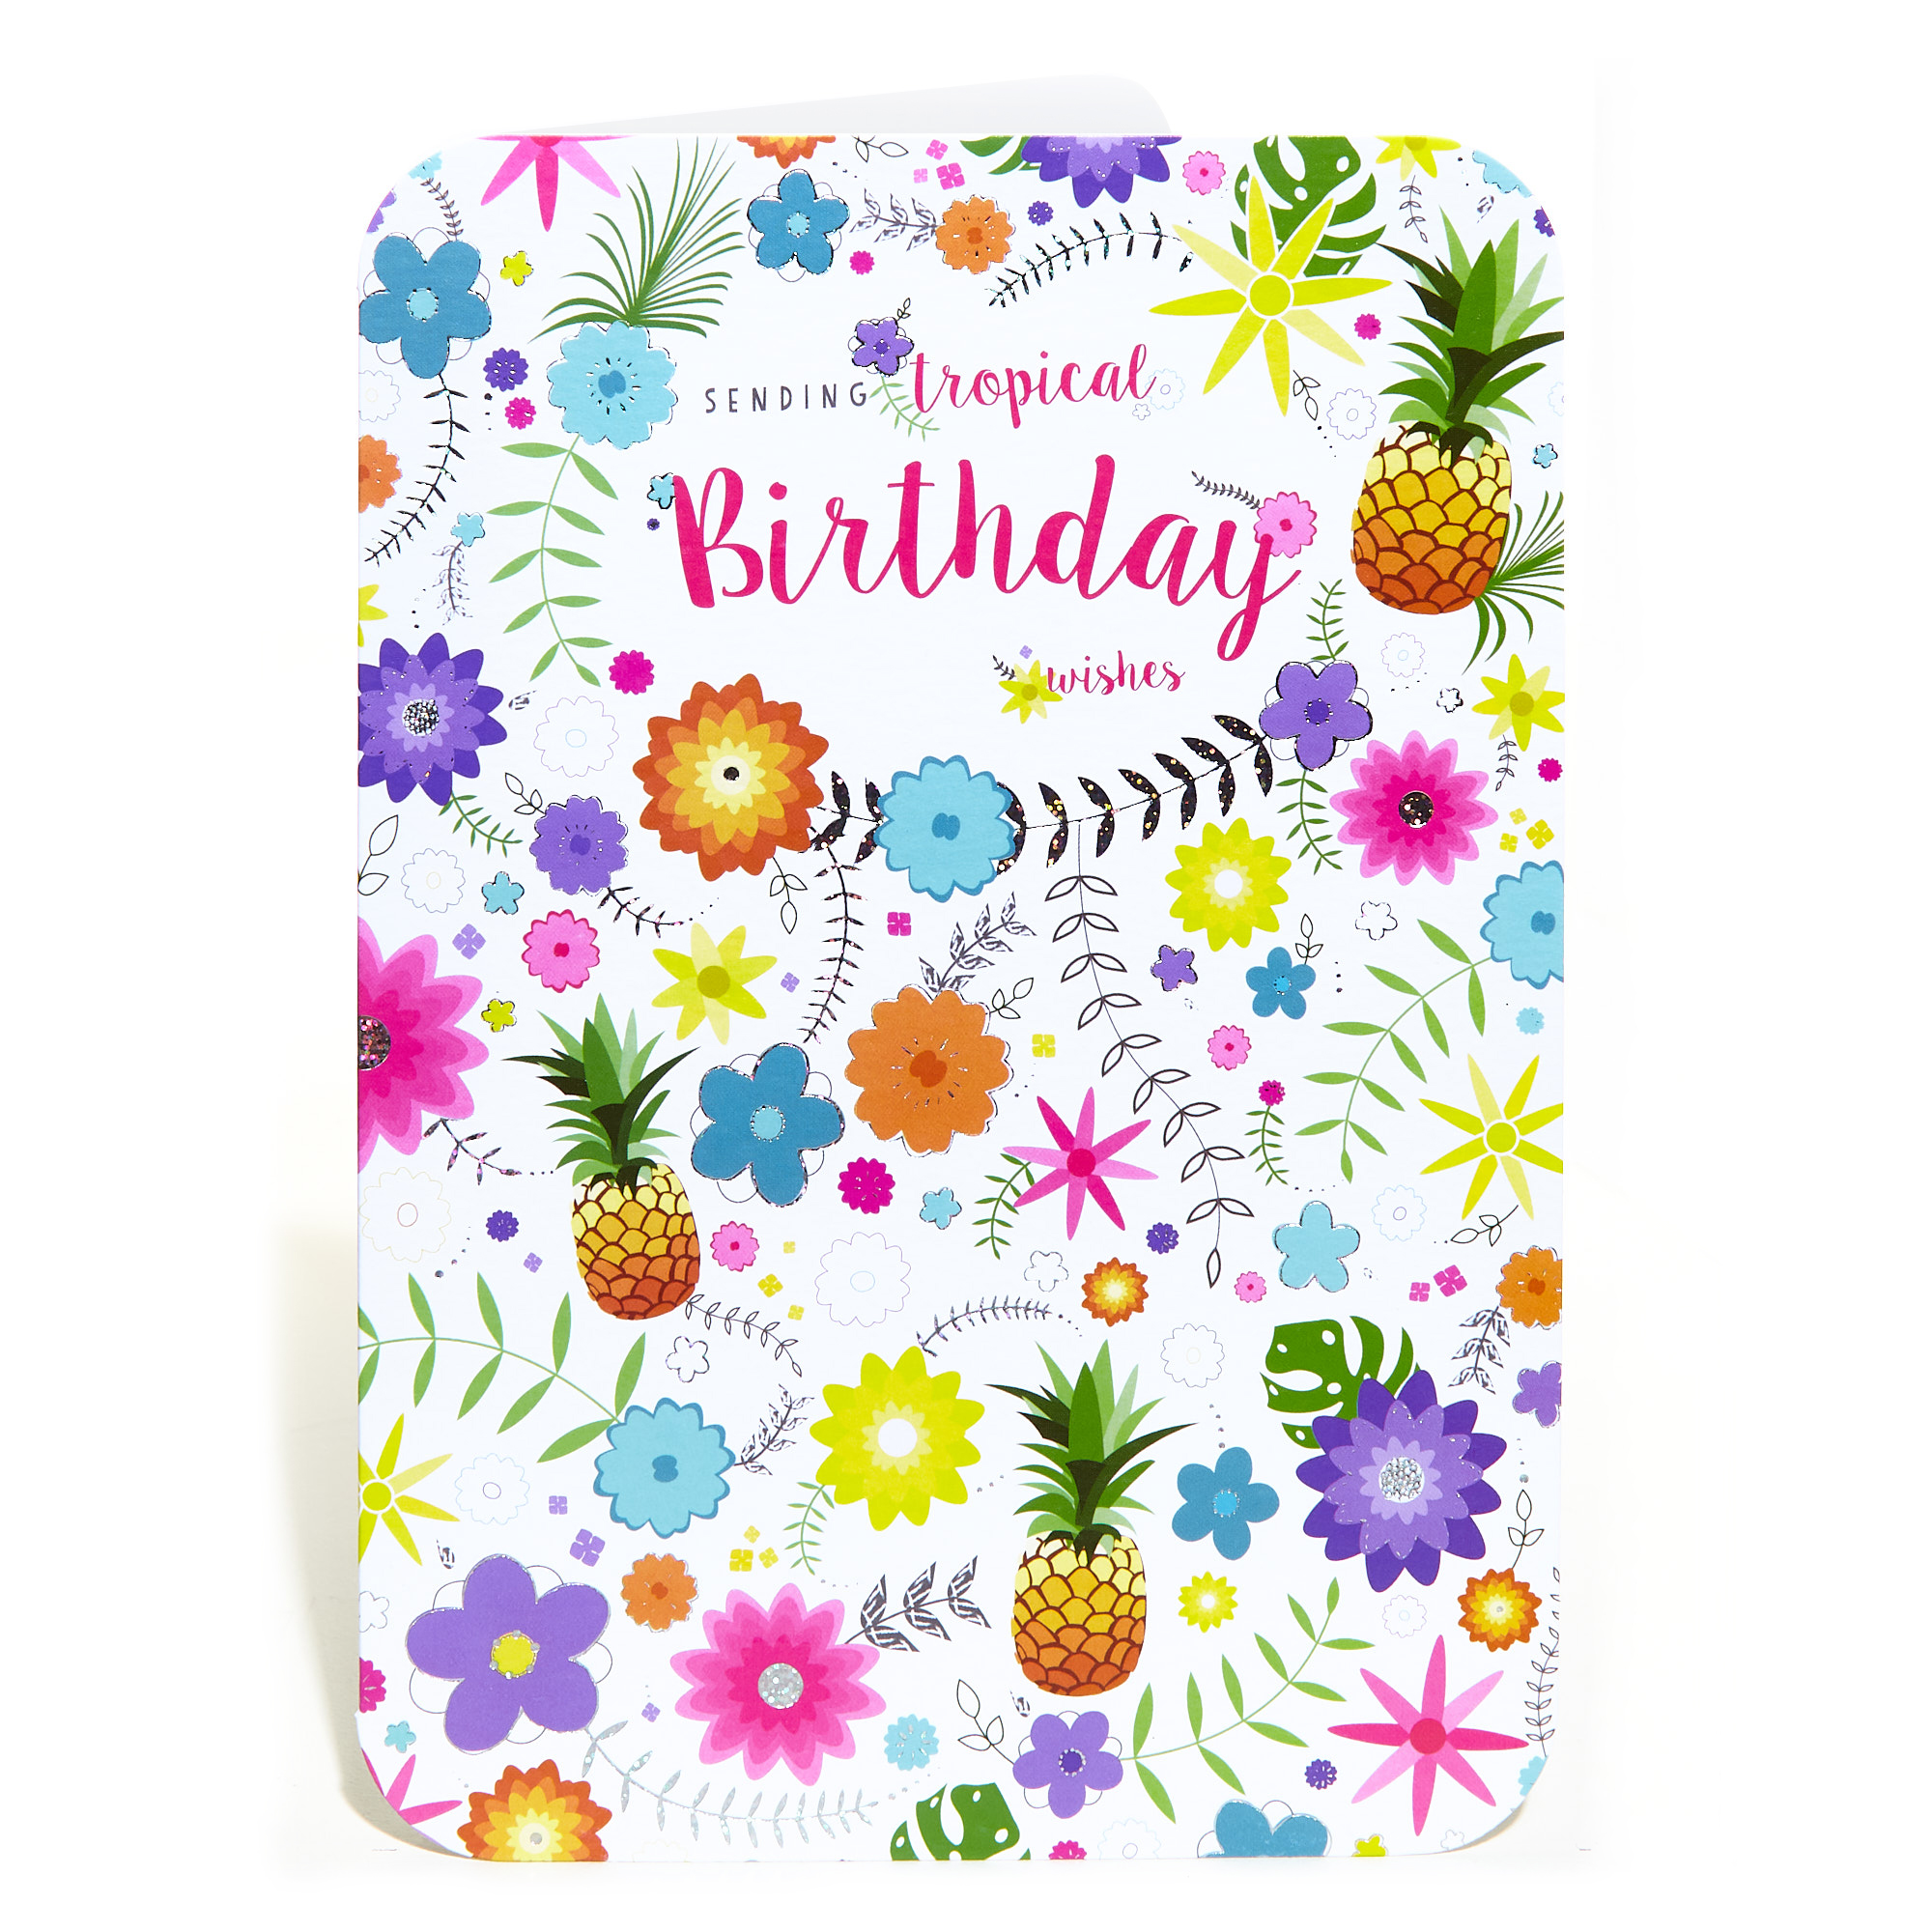 Birthday Card - Tropical Wishes